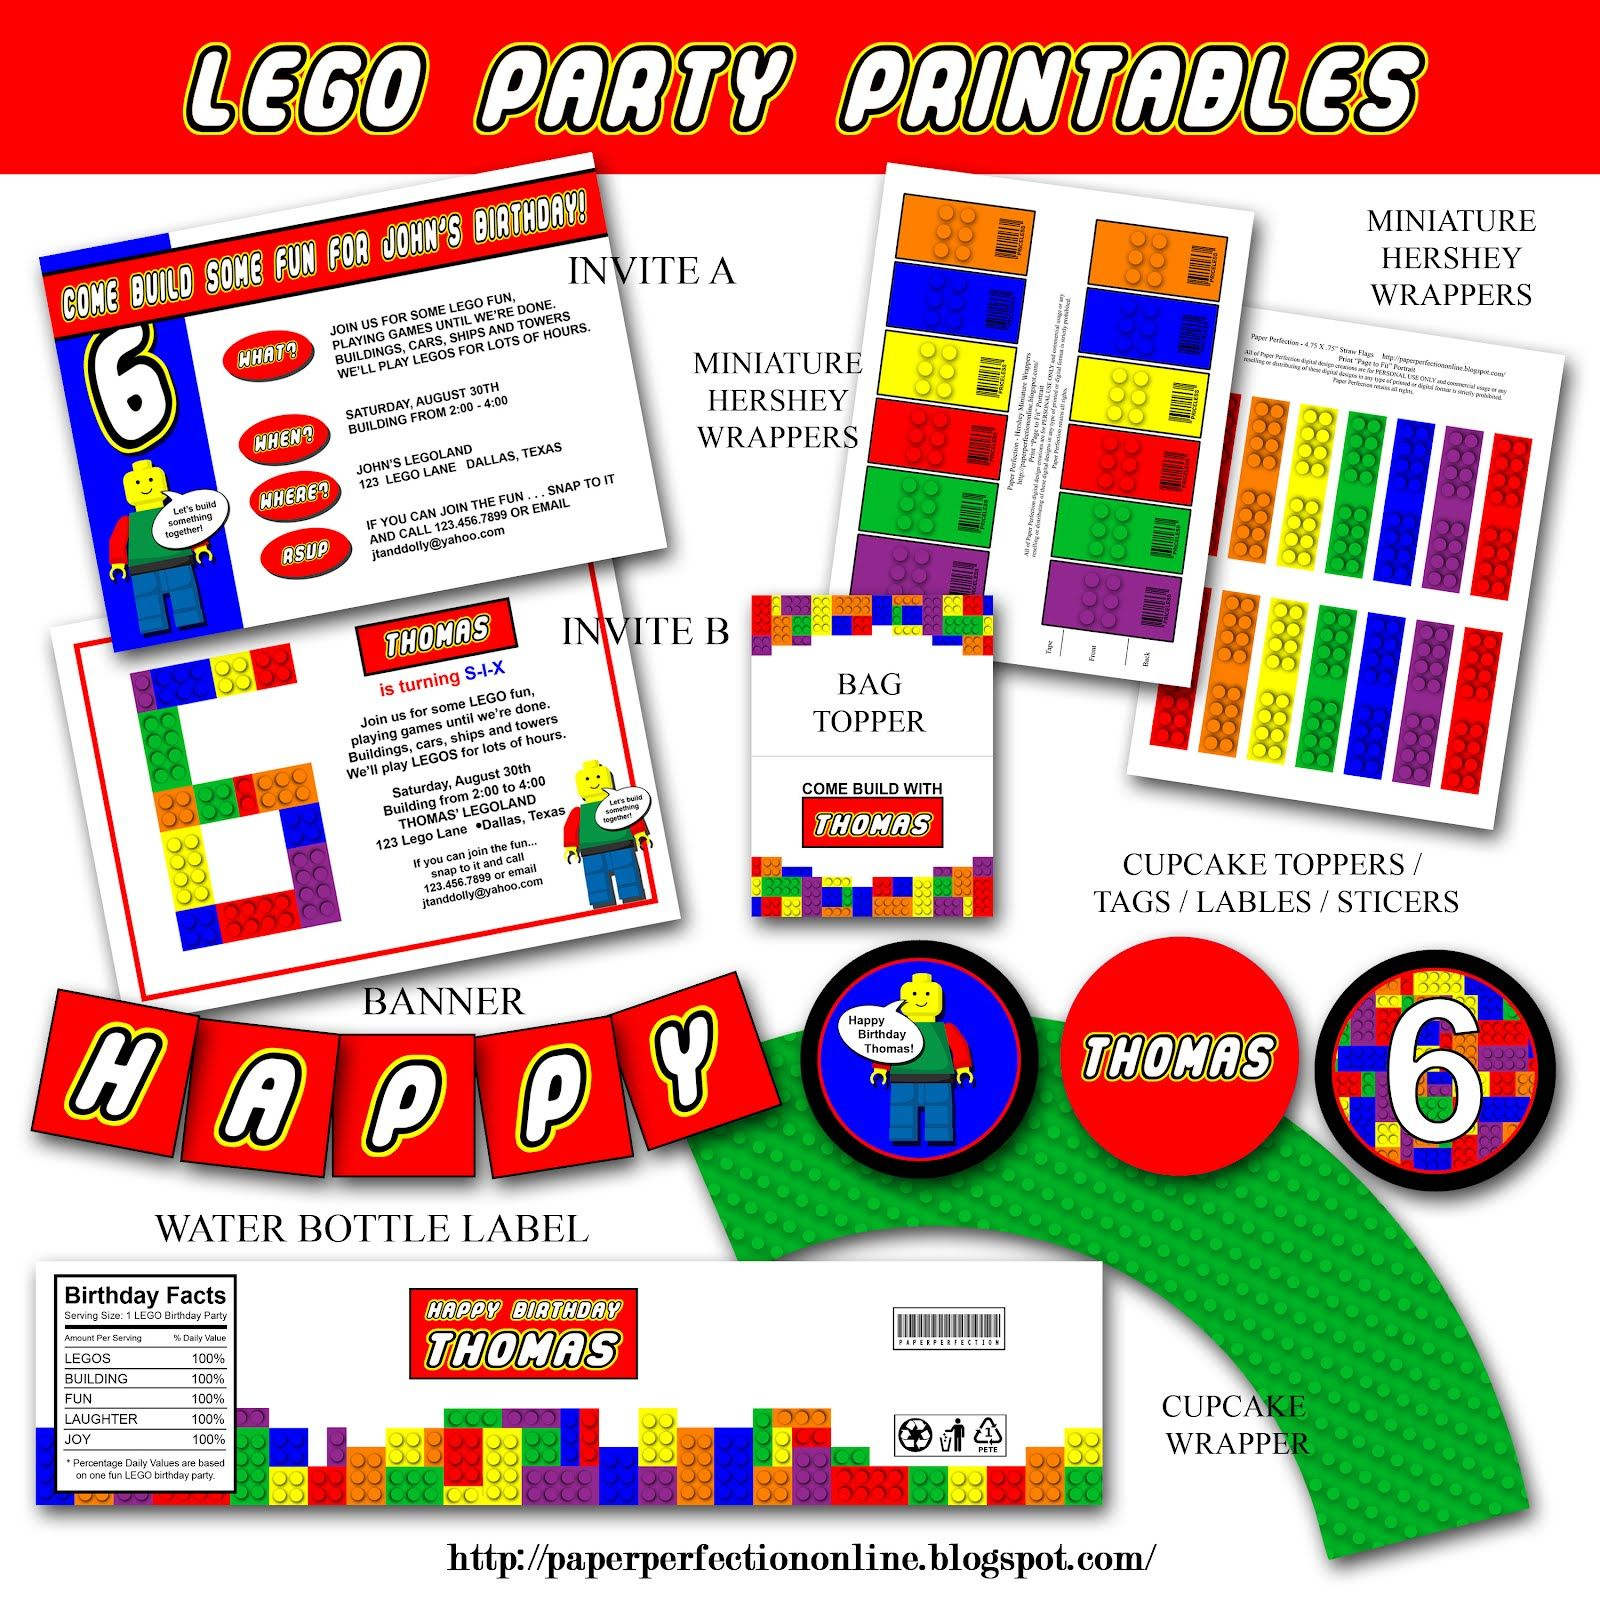 Lego Party Invitations Printable Free | Lego | Pinterest | Lego ...